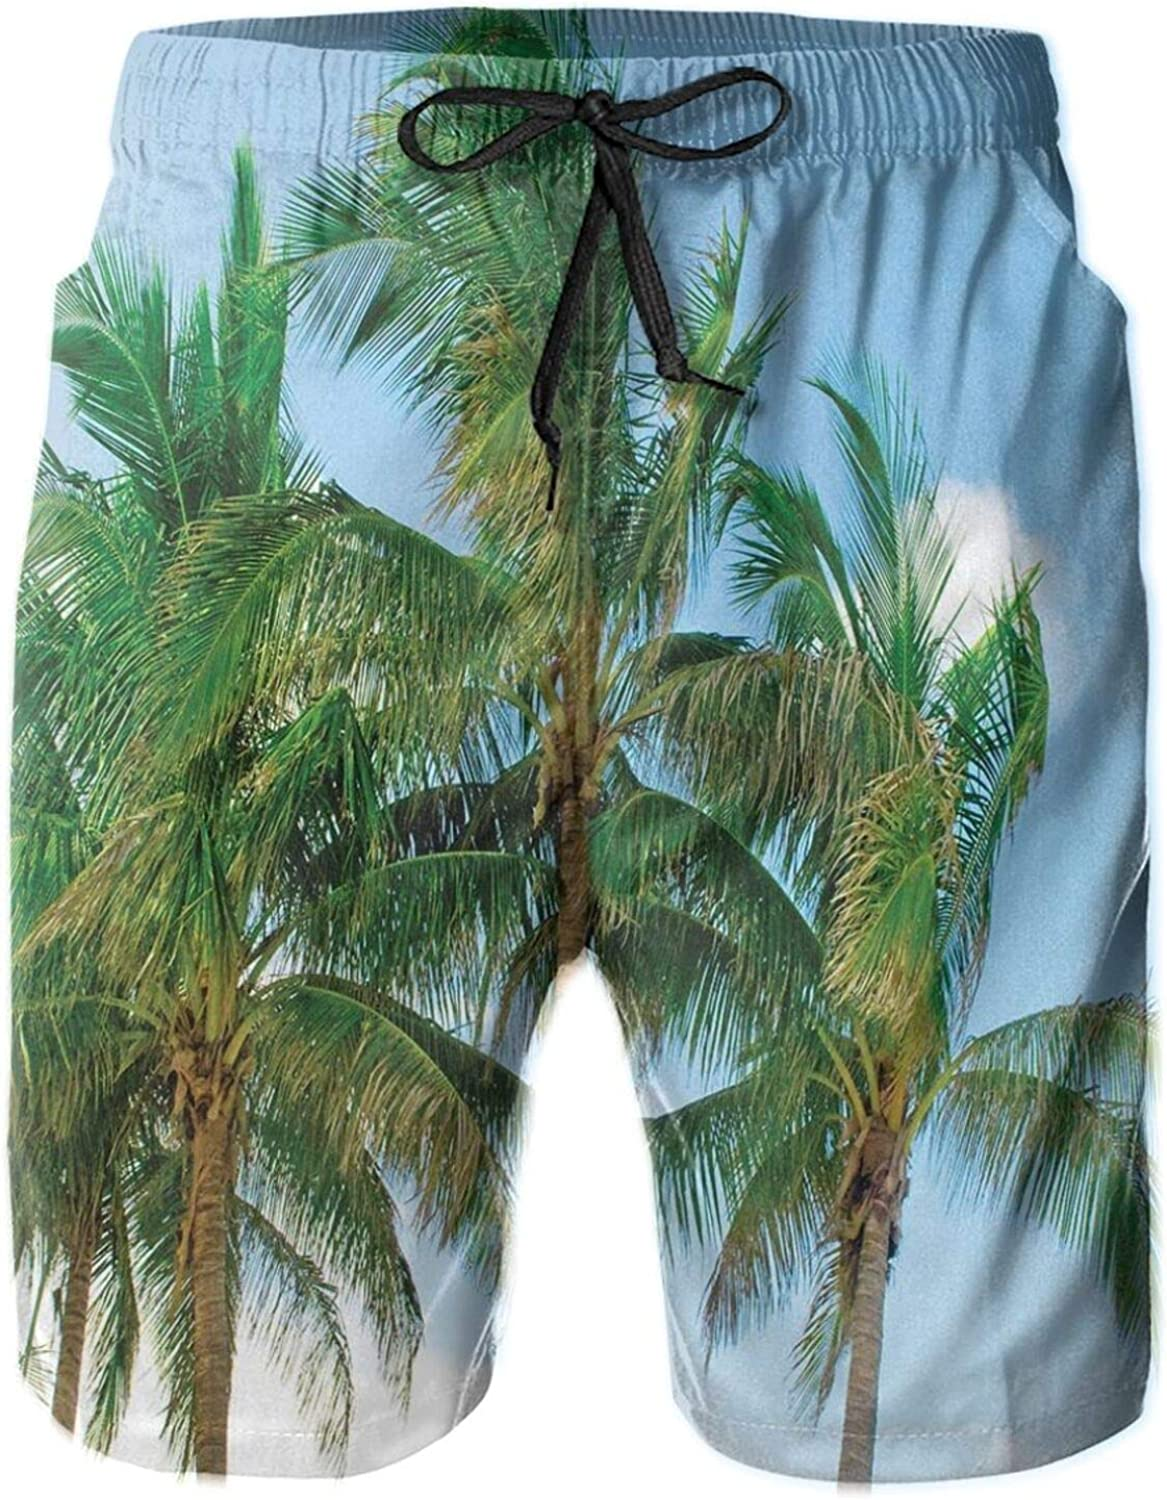 Palm Tree Tops in Sunny Sky Relaxing Exotic Idyllic Nature Serene Scenery Image Mens Swim Shorts Casual Workout Short Pants Drawstring Beach Shorts,XXL